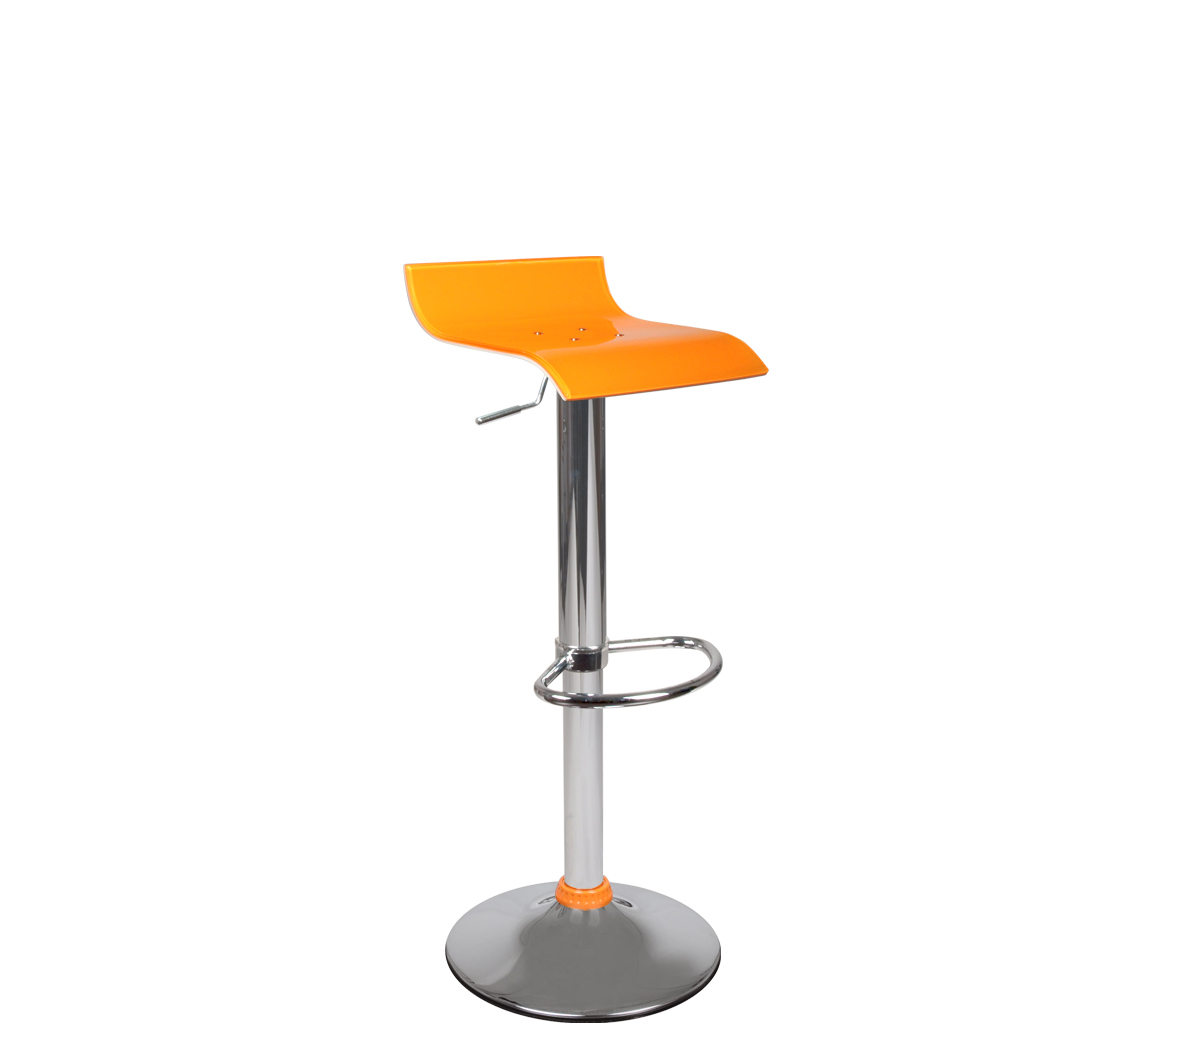 Tabouret de bar up to you design bicolore orange et blanc VEGA